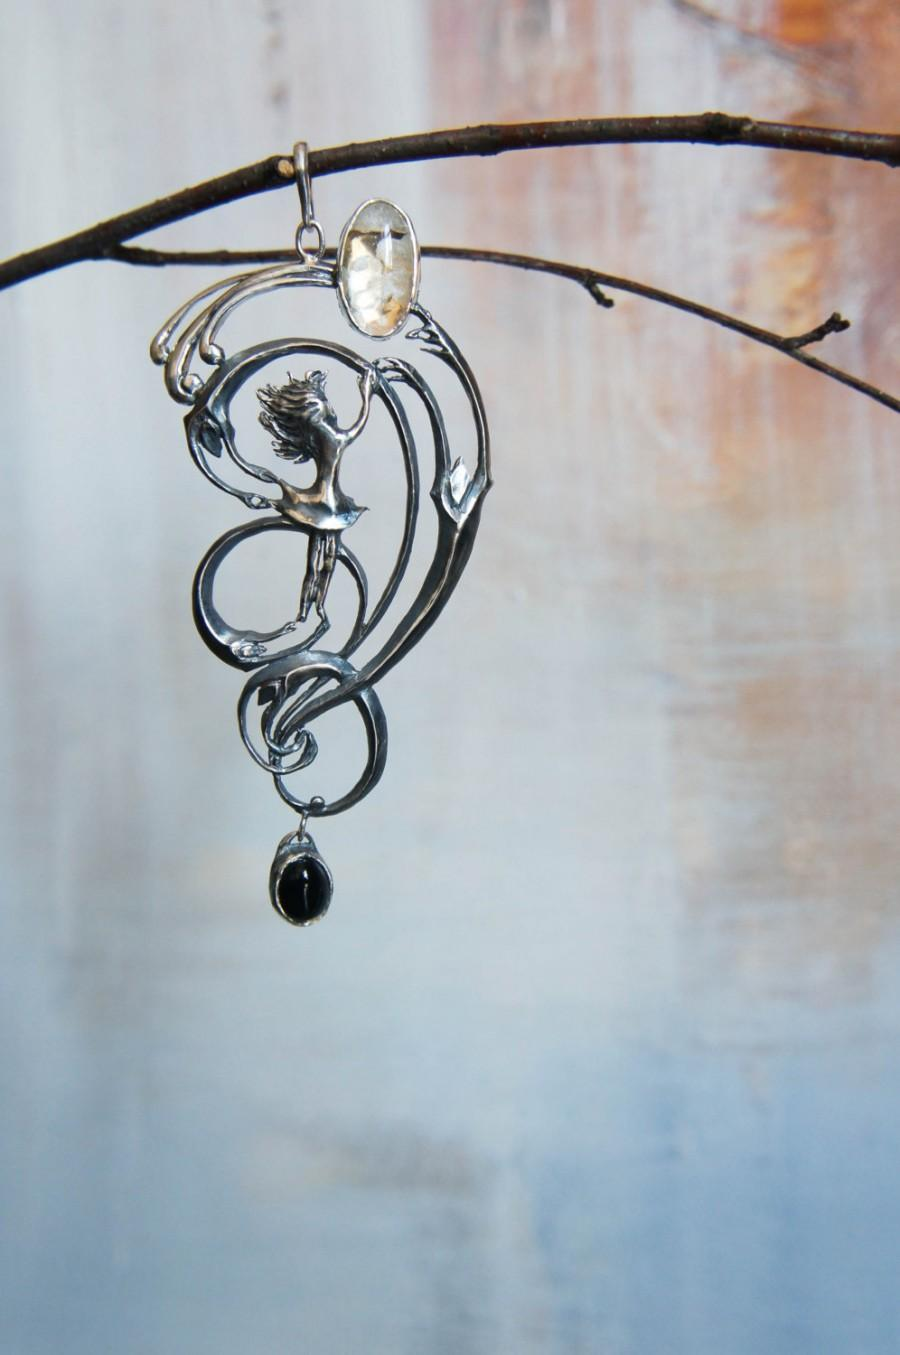 Mariage - One of a kind pendant, sterling silver pendant, unusual jewelry, swirl pendant, gift for woman, onyx pendant, unique pendant, large pendant